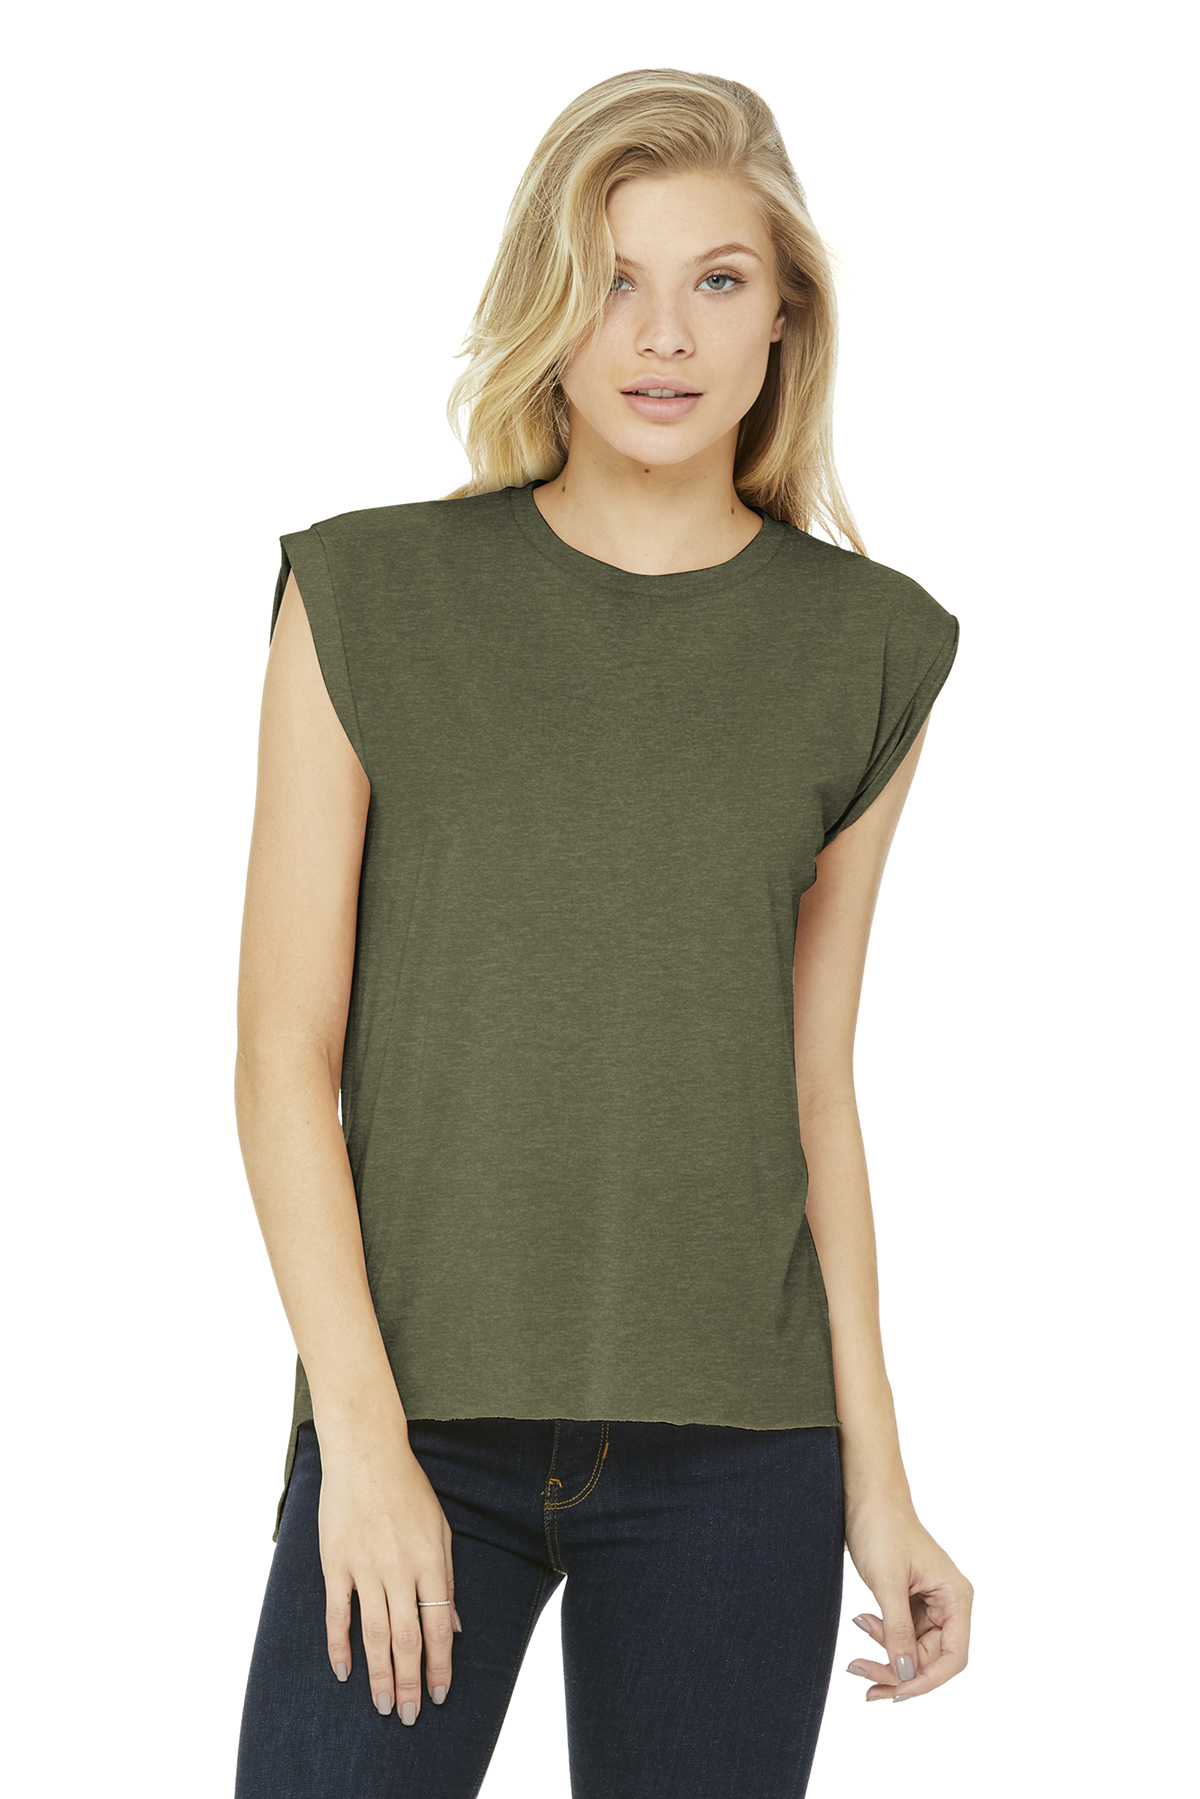 067ac393b01 BELLA+CANVAS ® Women s Flowy Muscle Tee With Rolled Cuffs ...